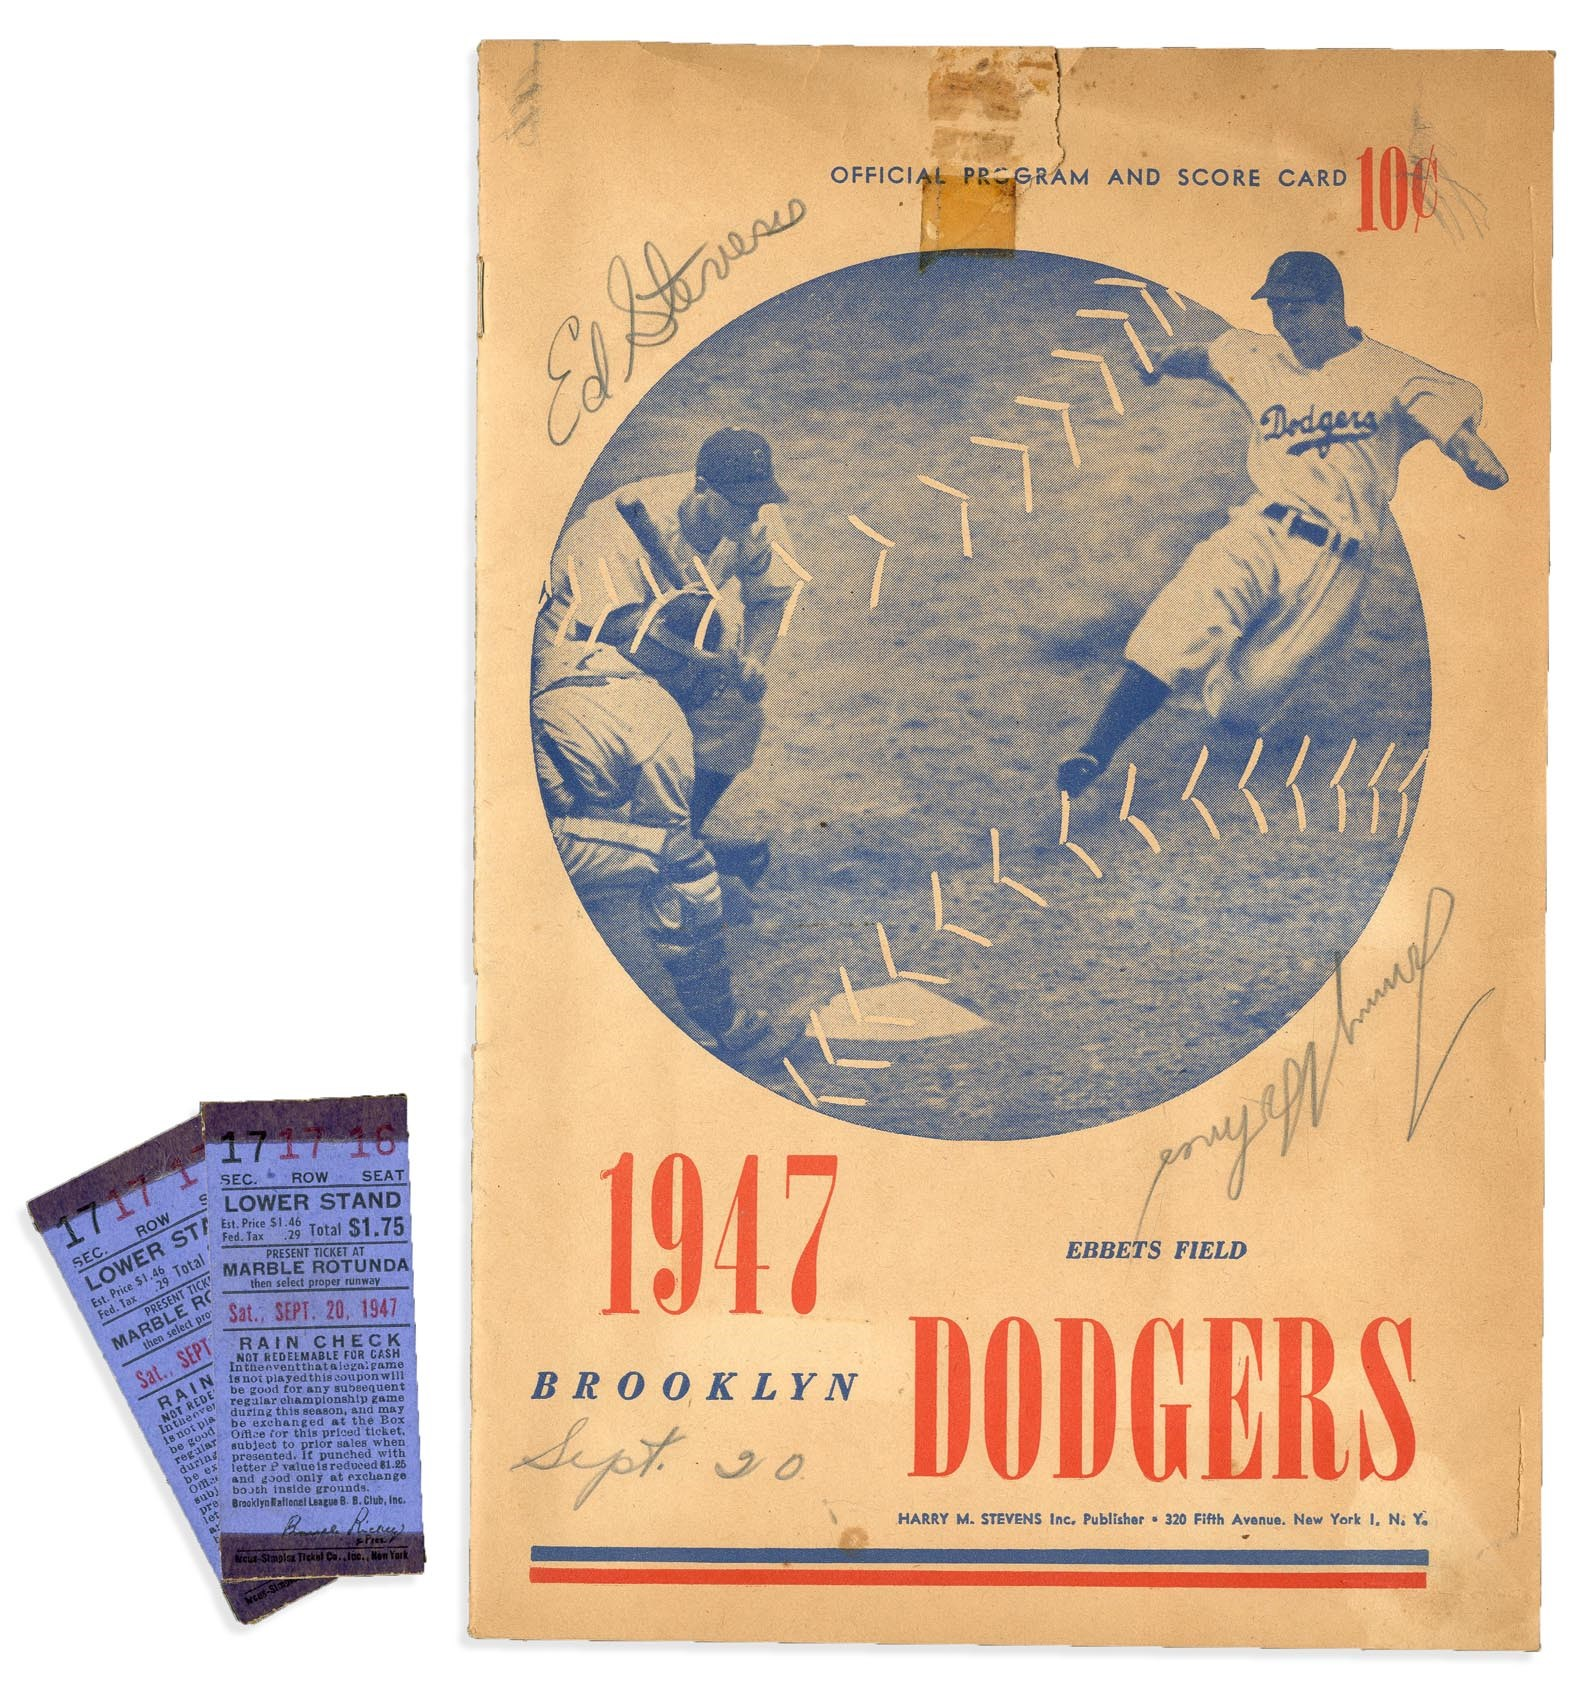 Jackie Robinson & Brooklyn Dodgers - Monthly 07-18